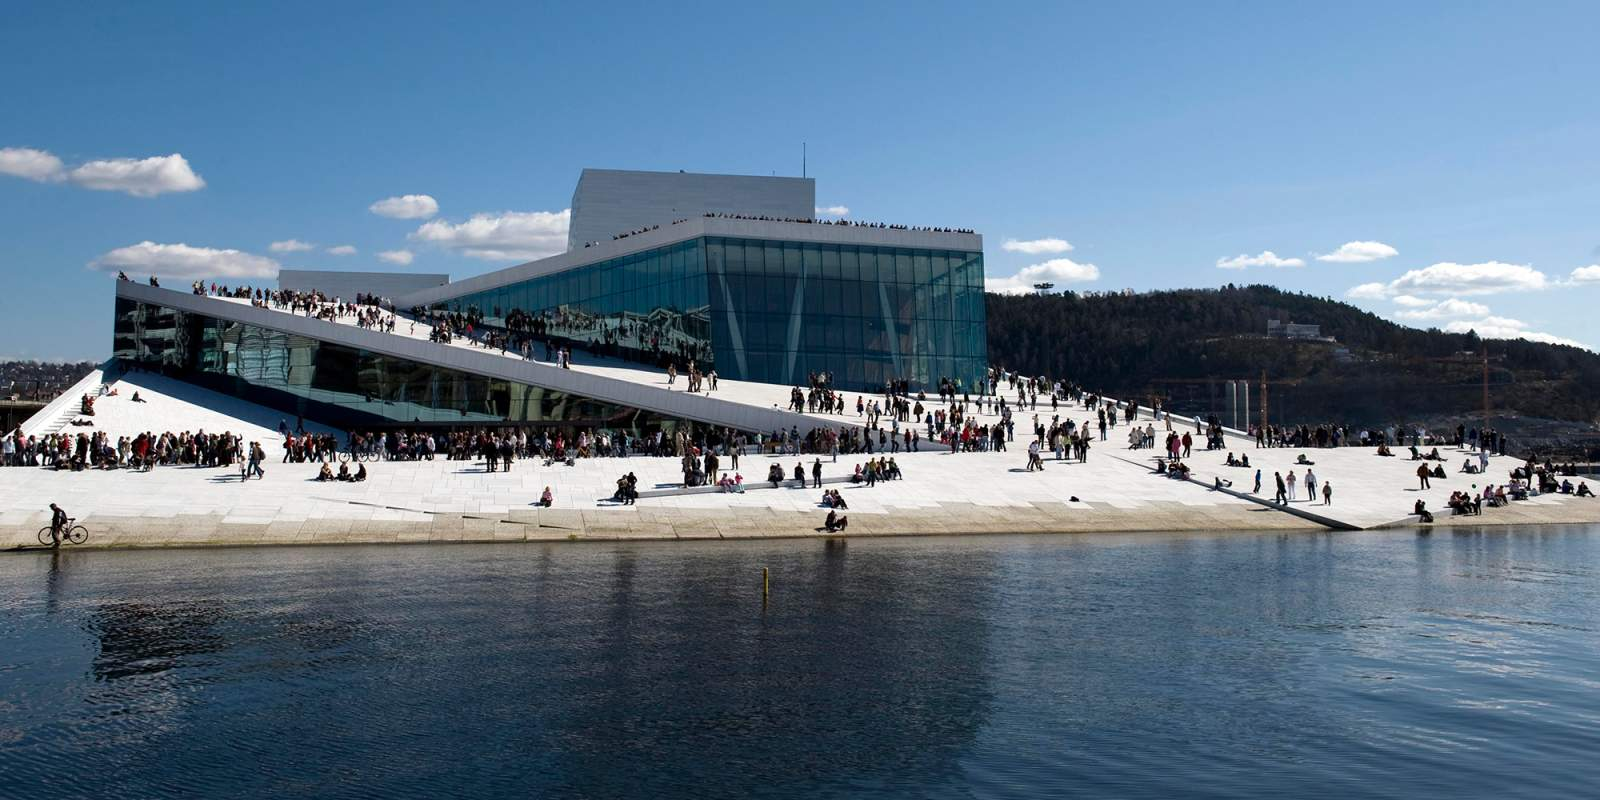 https://res.cloudinary.com/simpleview/image/upload/c_fill,f_auto,q_65,w_1600/v1/clients/norway/oslo_opera_house_norway_2_1_19f2edb1-9e5f-4ca1-ac97-f26d99523351.jpg